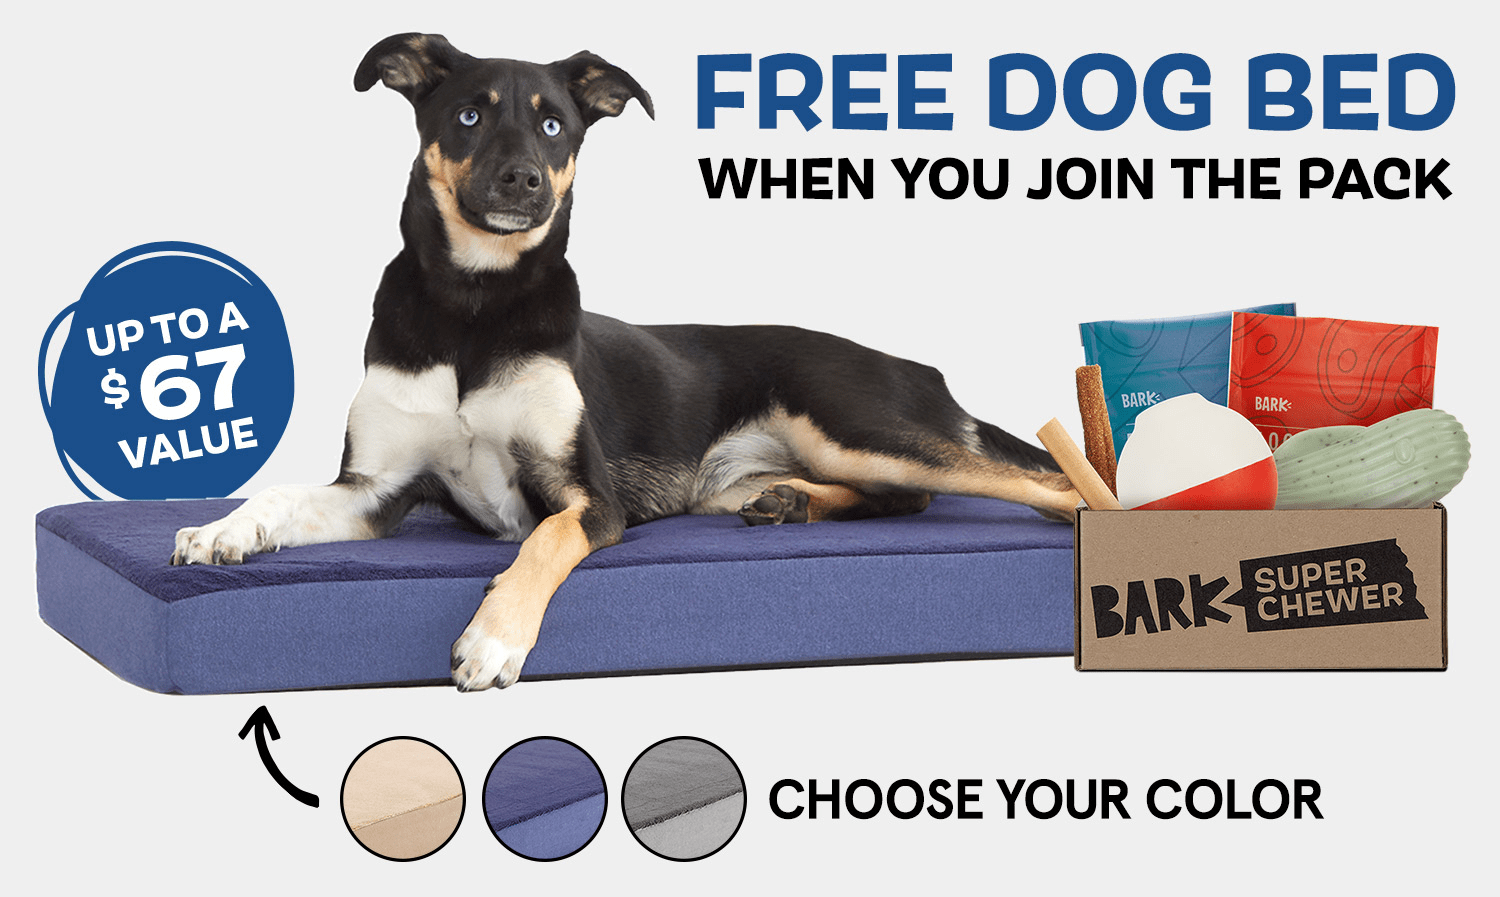 BarkBox Super Chewer Coupon Code – FREE Dog Bed (up to $67 value)